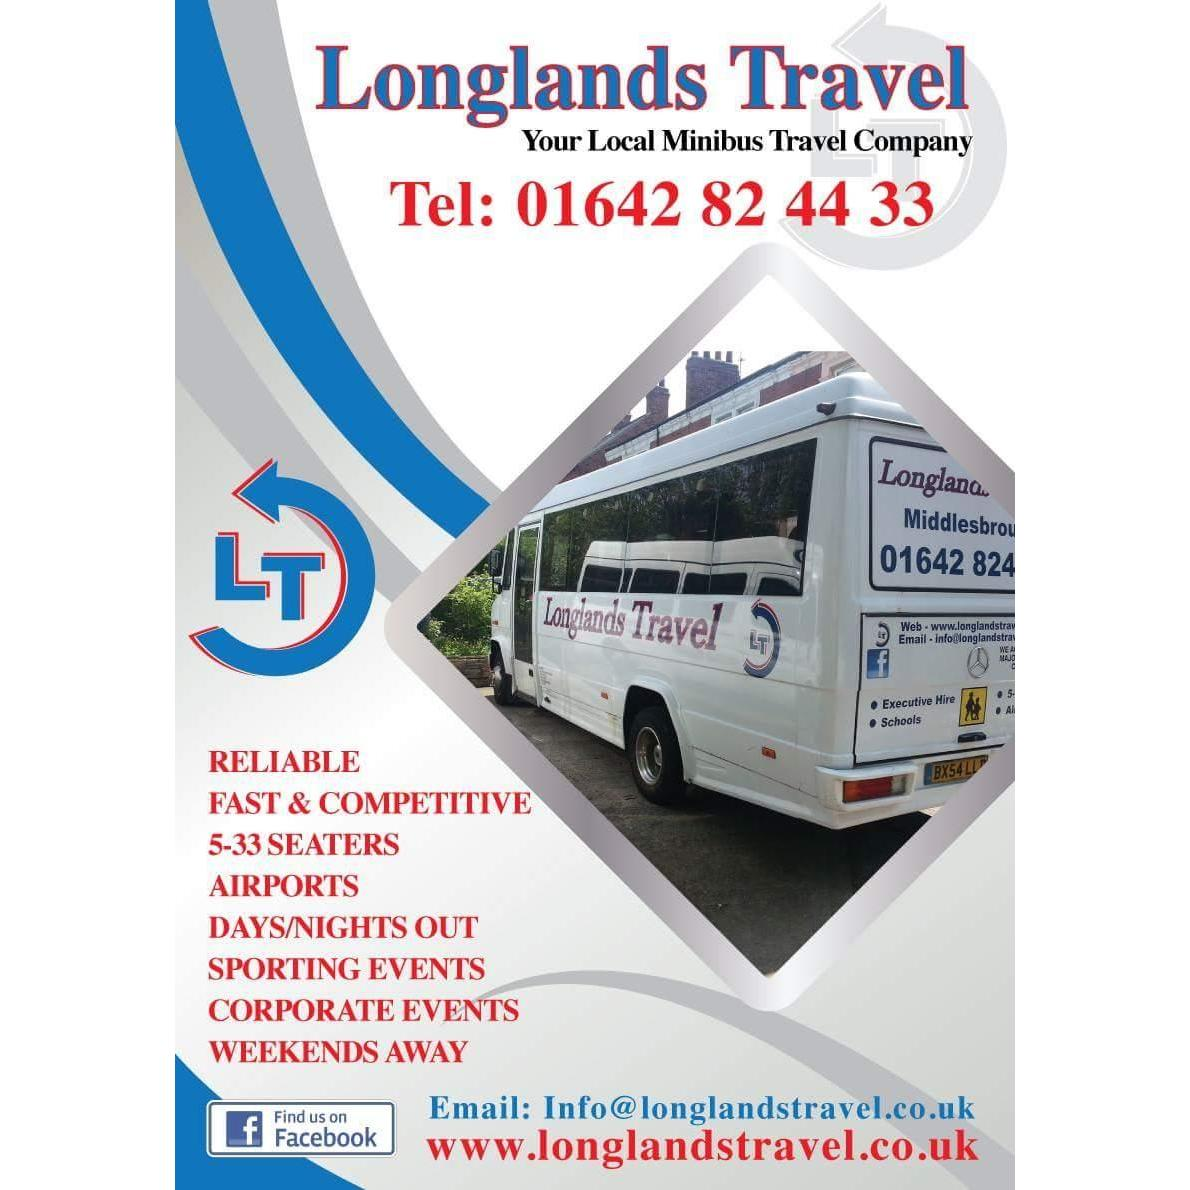 Longlands Travel